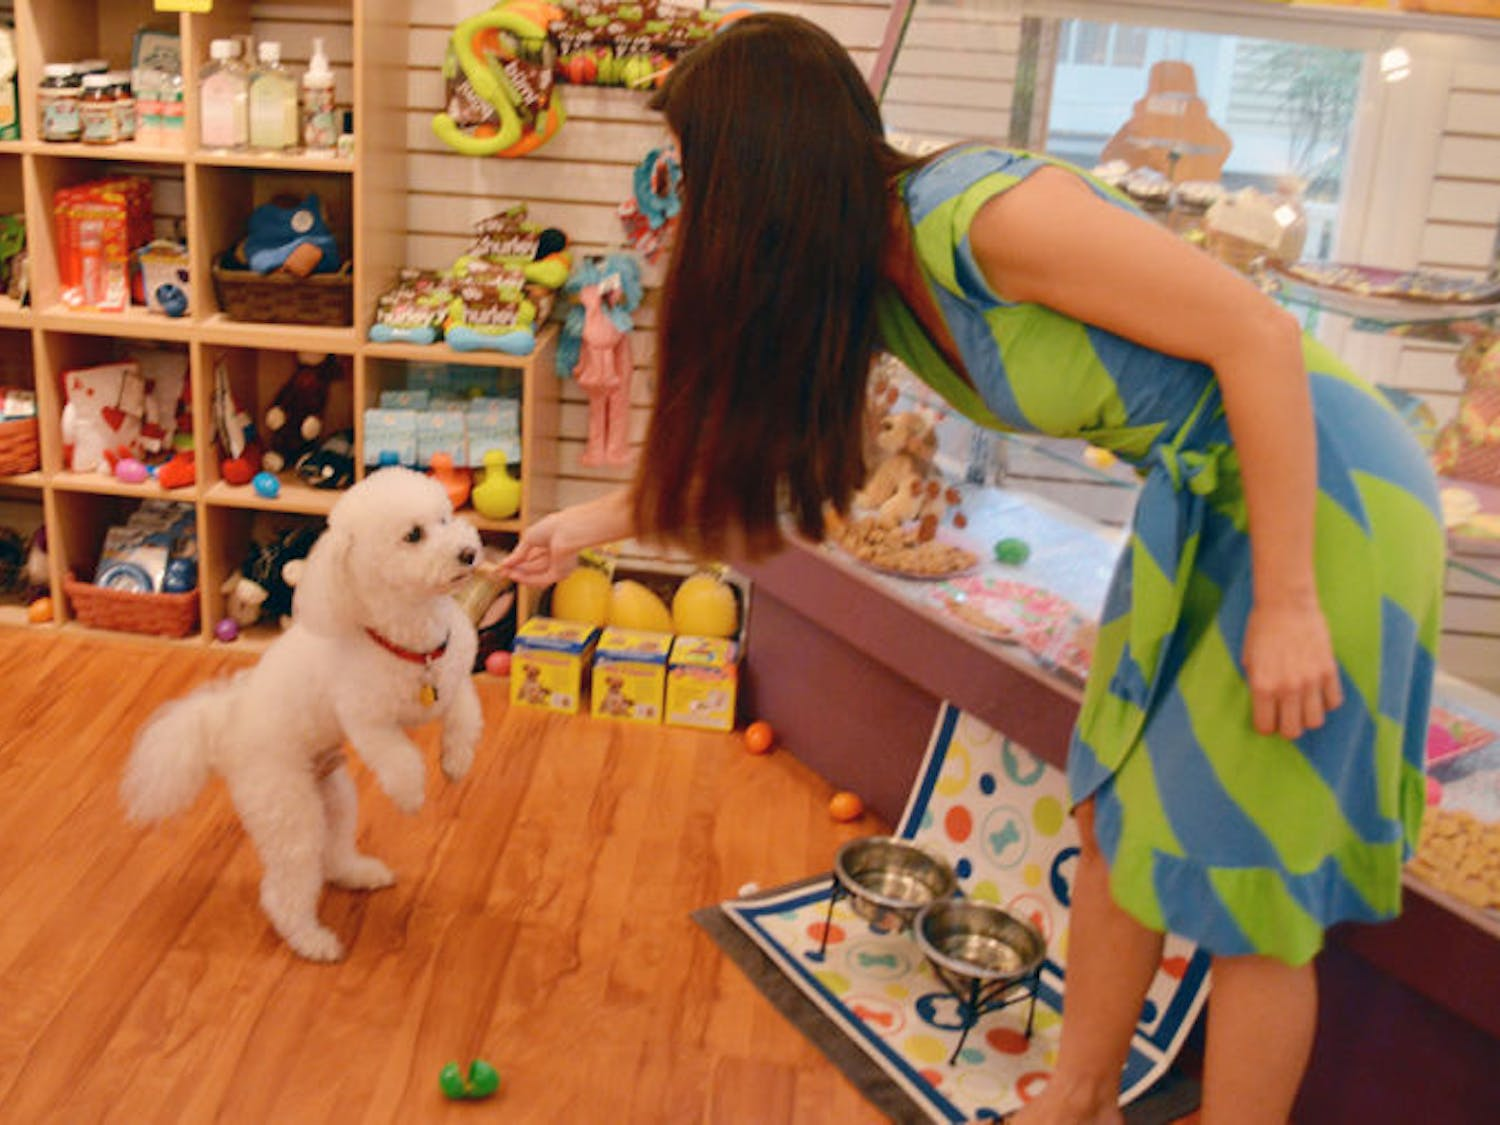 Colleen O'Fallon, a UF alumna and owner of Sweet Paws Bakery, helps Spike, a 7-year-old bichon frise and poodle mix, receive his reward for successfully finding an Easter egg. Sweet Paws hosted an Easter egg hunt for dogs Friday evening. Eggs contained dog treats.